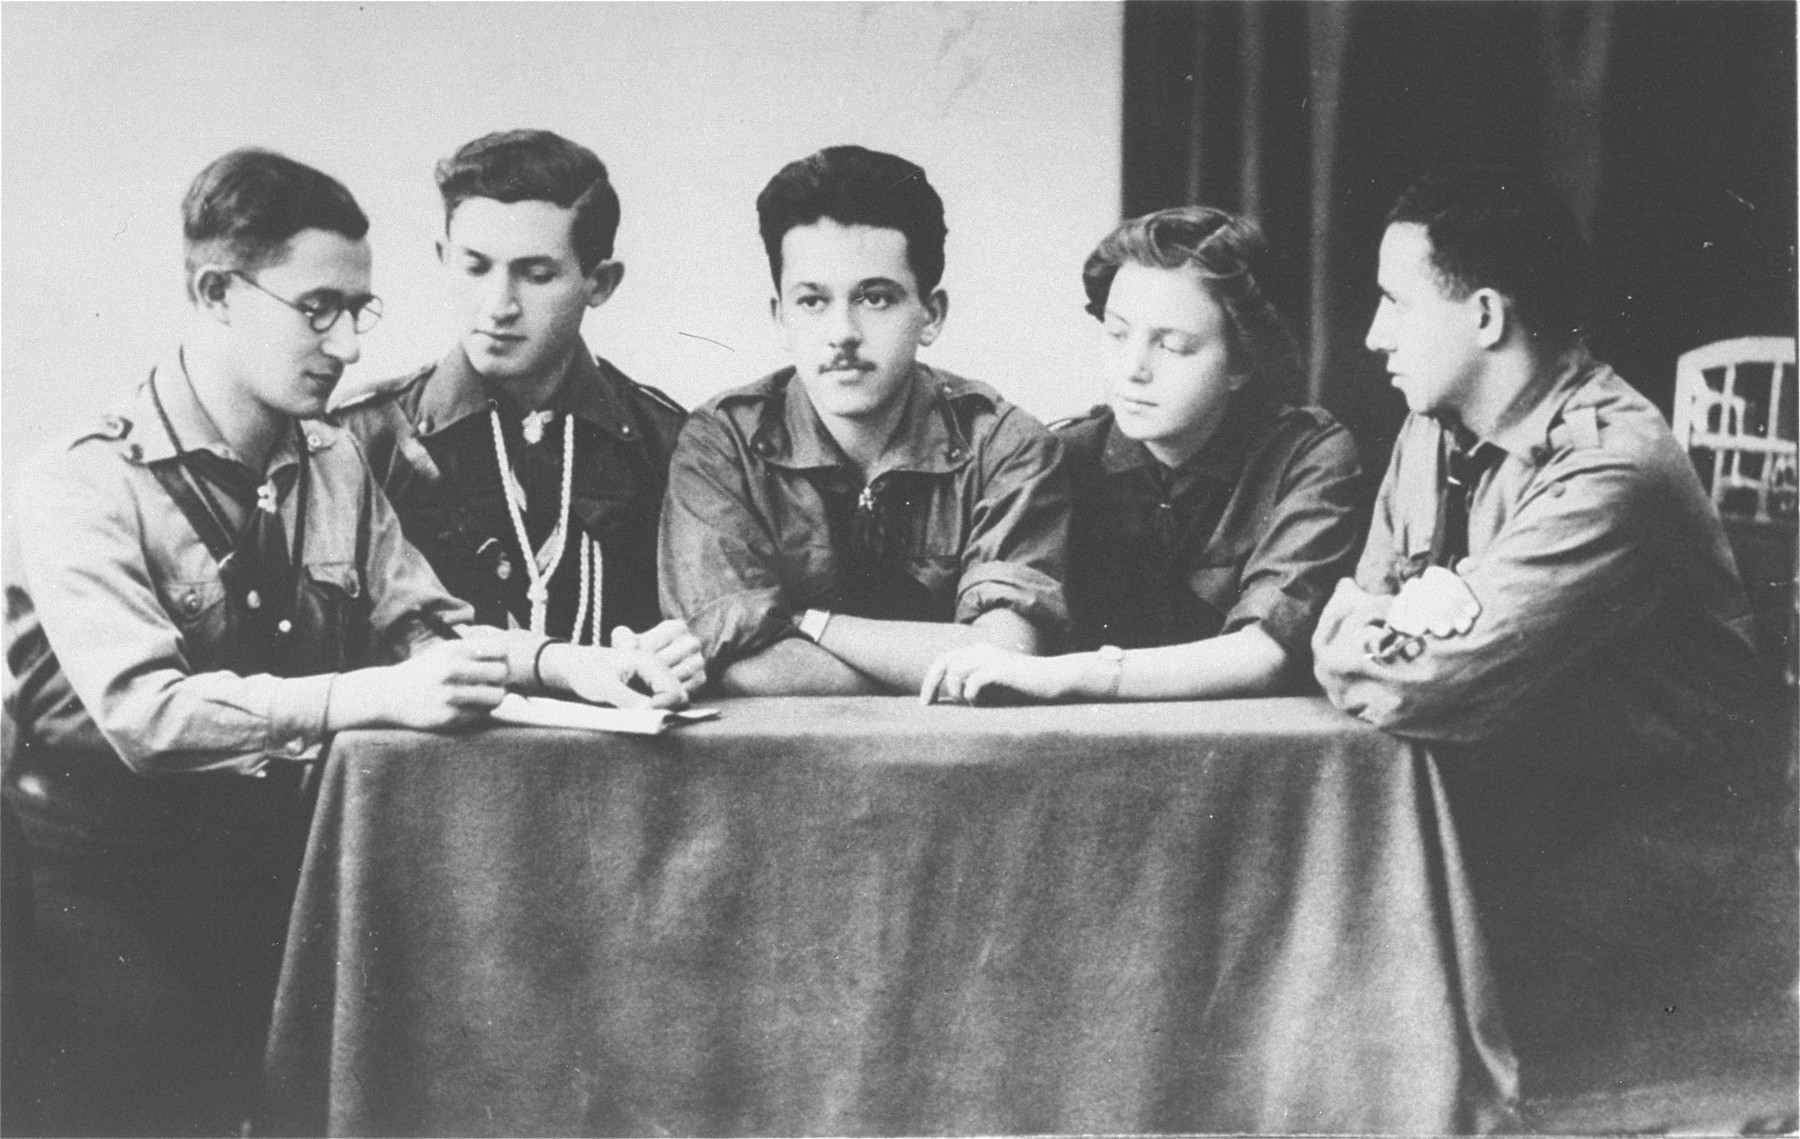 Group portrait of members of the Hanoar Hatzioni Zionist youth movement in Sosnowiec.  All were active in the Zionist underground in Sosnowiec during the German occupation.  Pictured from left to right are, Dr. Bursztyn, Josef Kozhuch, Samek Meitlis, Lola Pomeranzblum, and Benjamin Bimko (the donor's brother).  Samek and Lola were married.  All but Dr. Bursztyn were shot by the Germans during the final liquidation of the ghetto in August 1943.